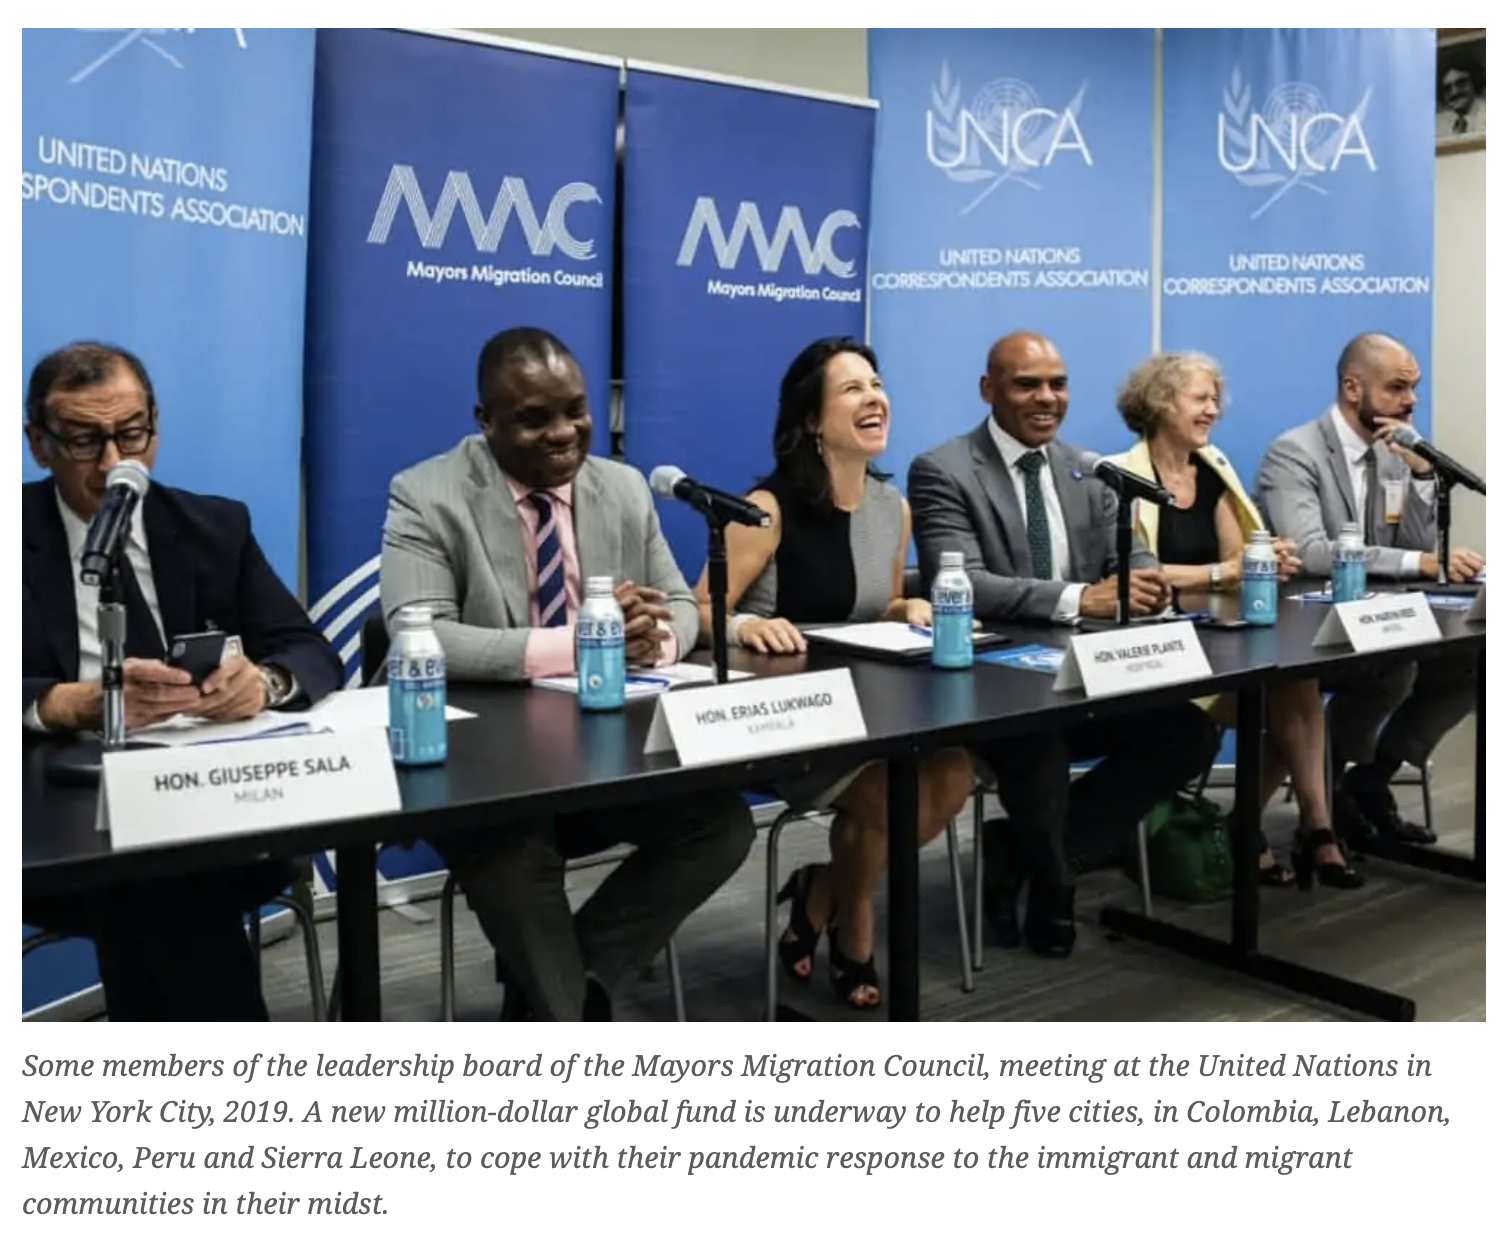 Six members the Mayors Migration Council's leadership board, meeting at the United Nations in 2019